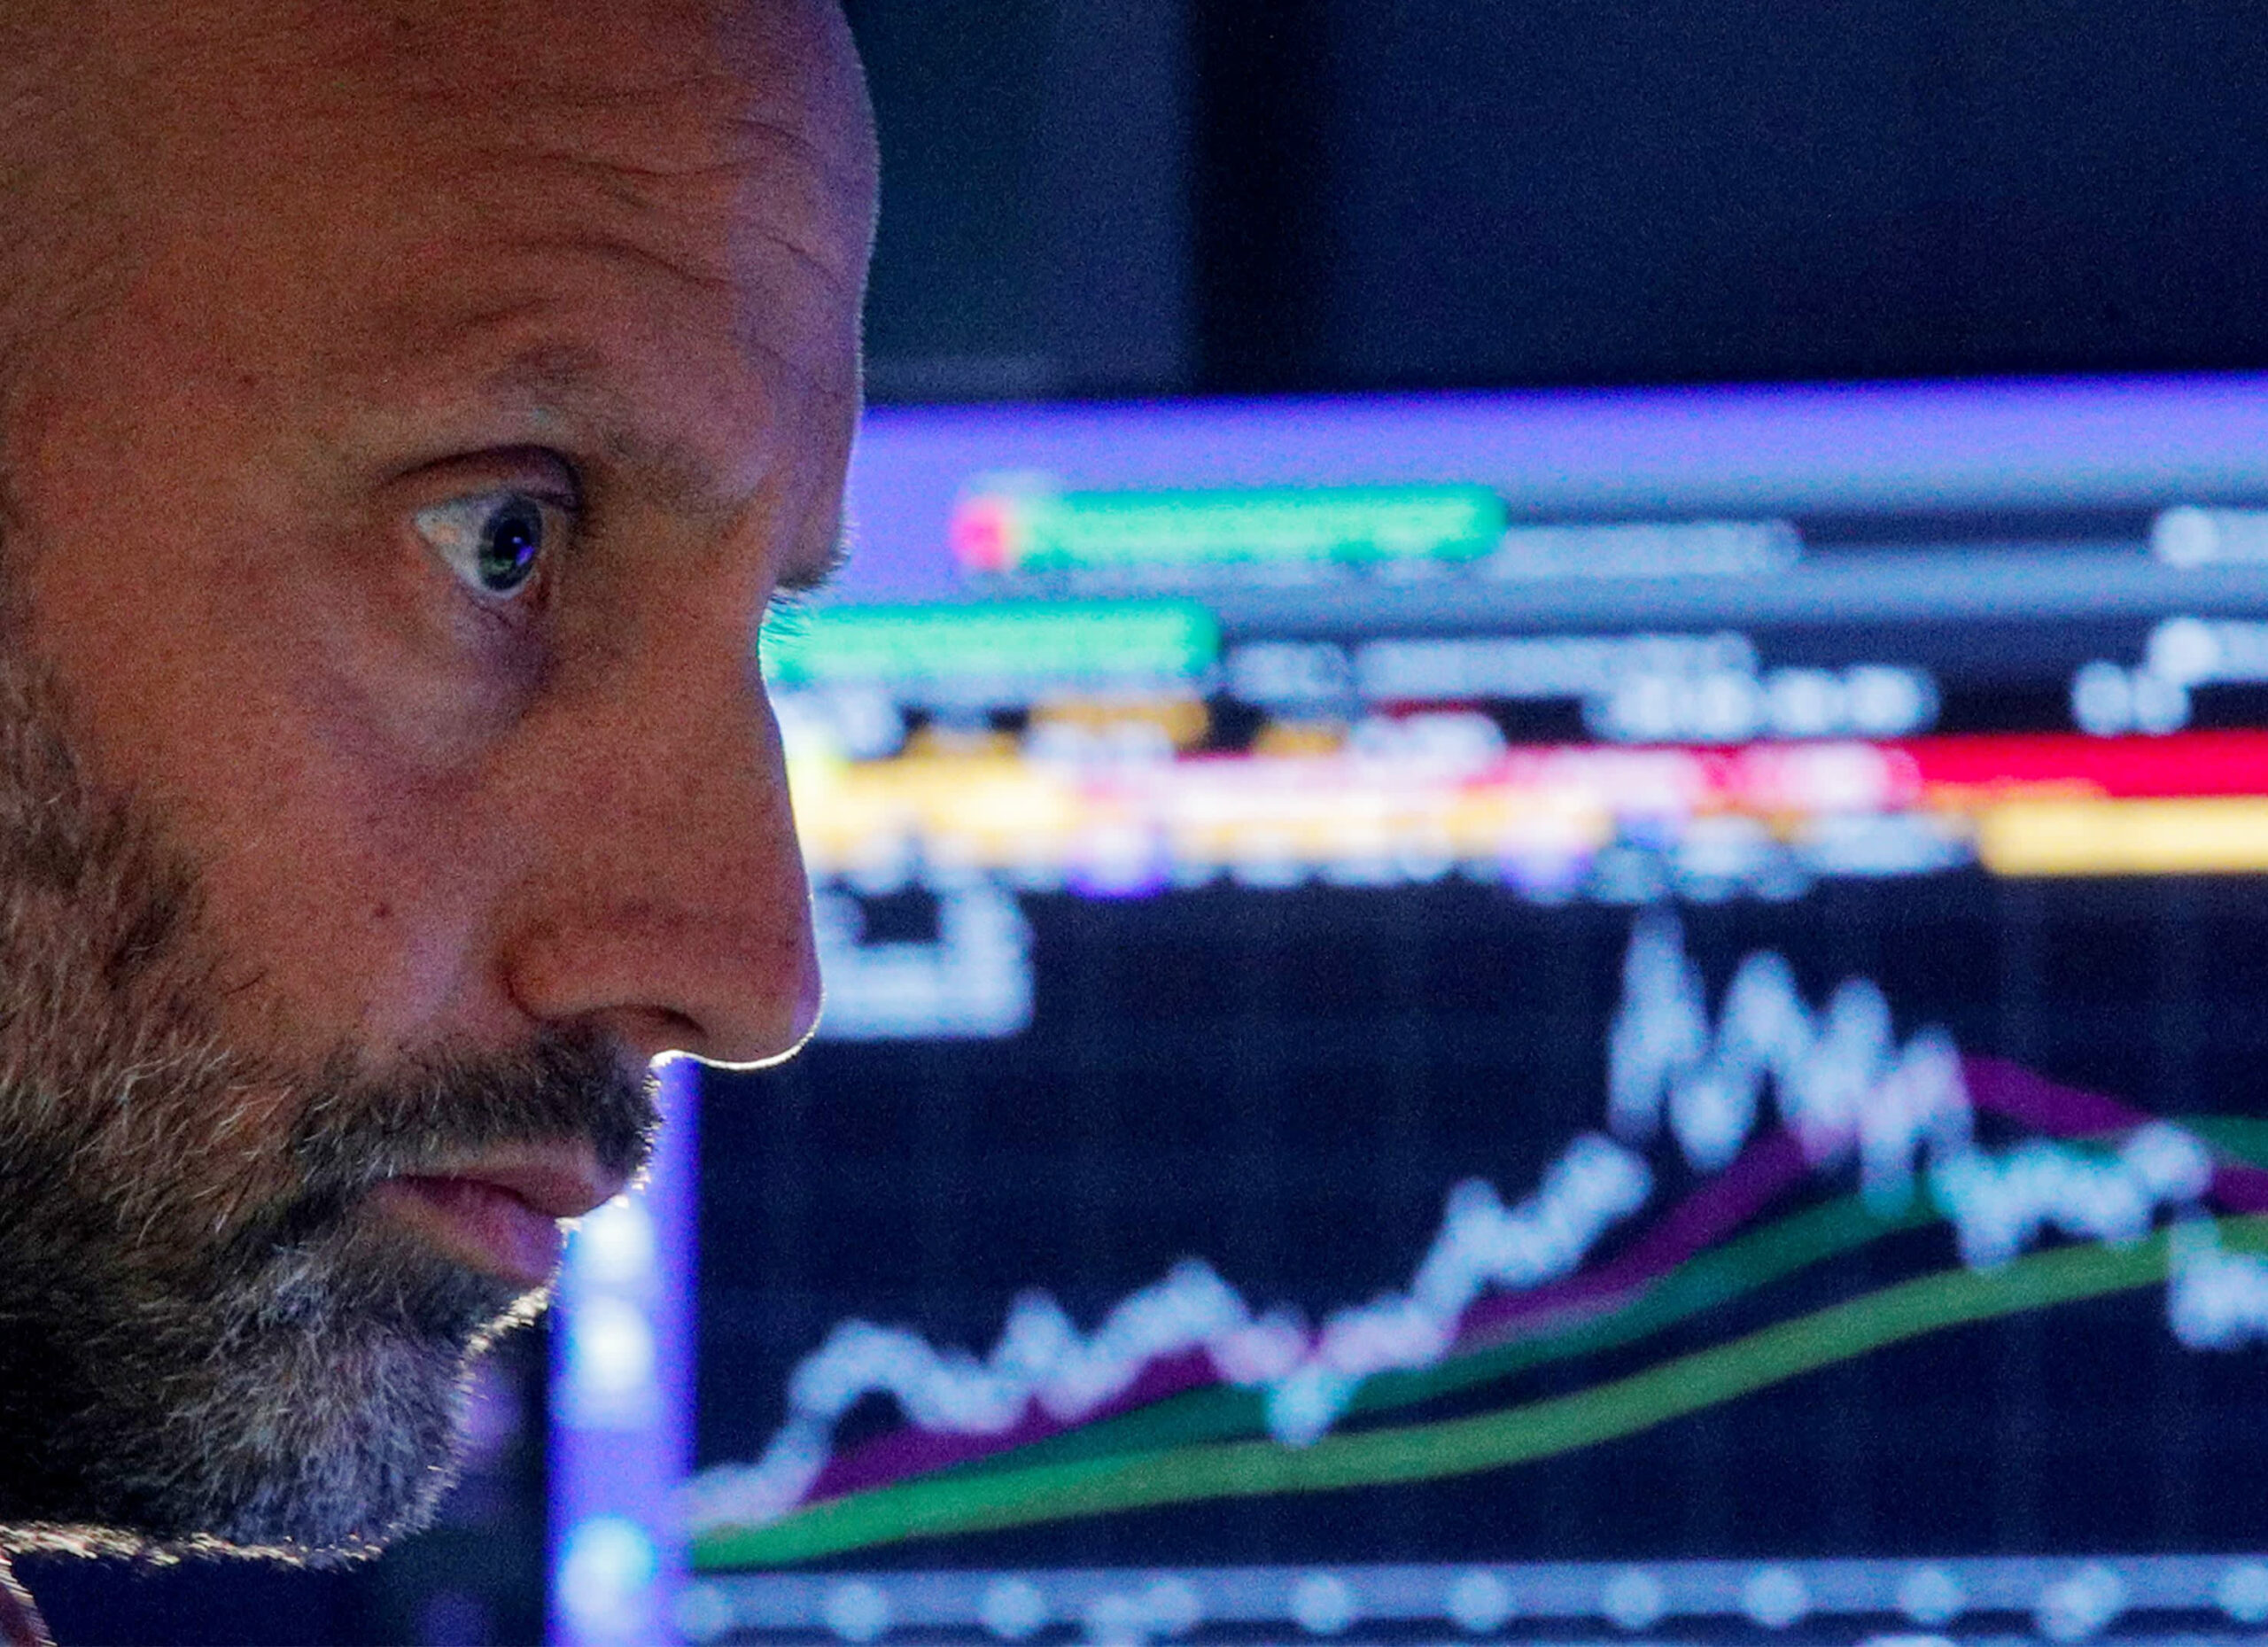 futures edge higher after stocks notch 3 day win streak 1626996795 2075522386 scaled